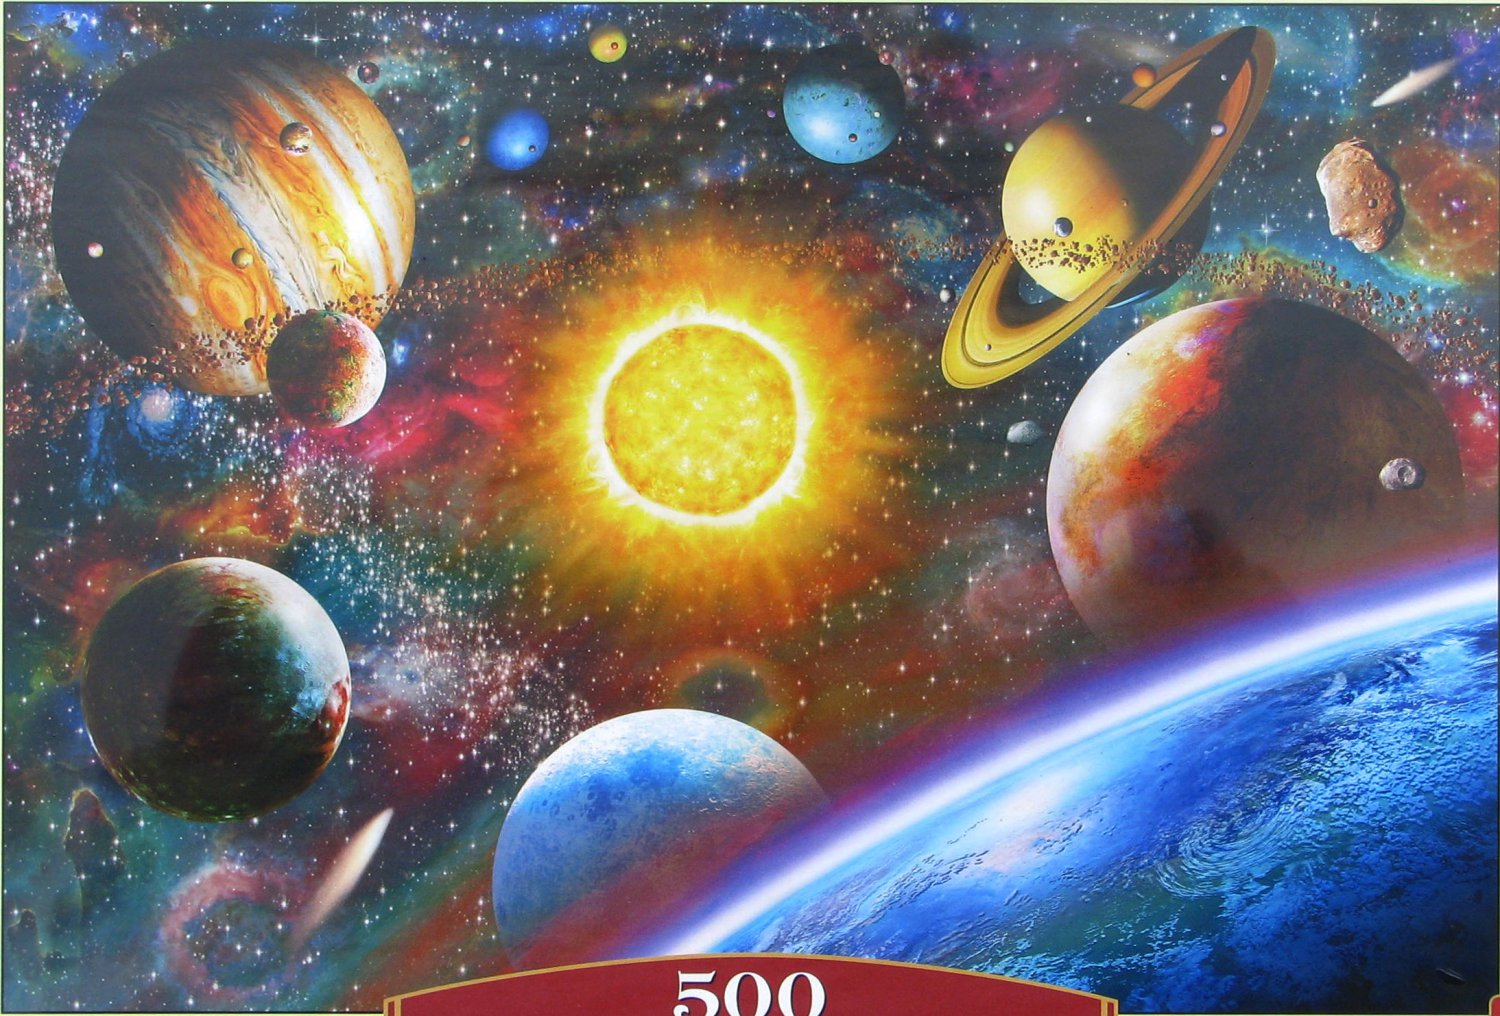 Castorland OUTER SPACE 500 pc Jigsaw Puzzle